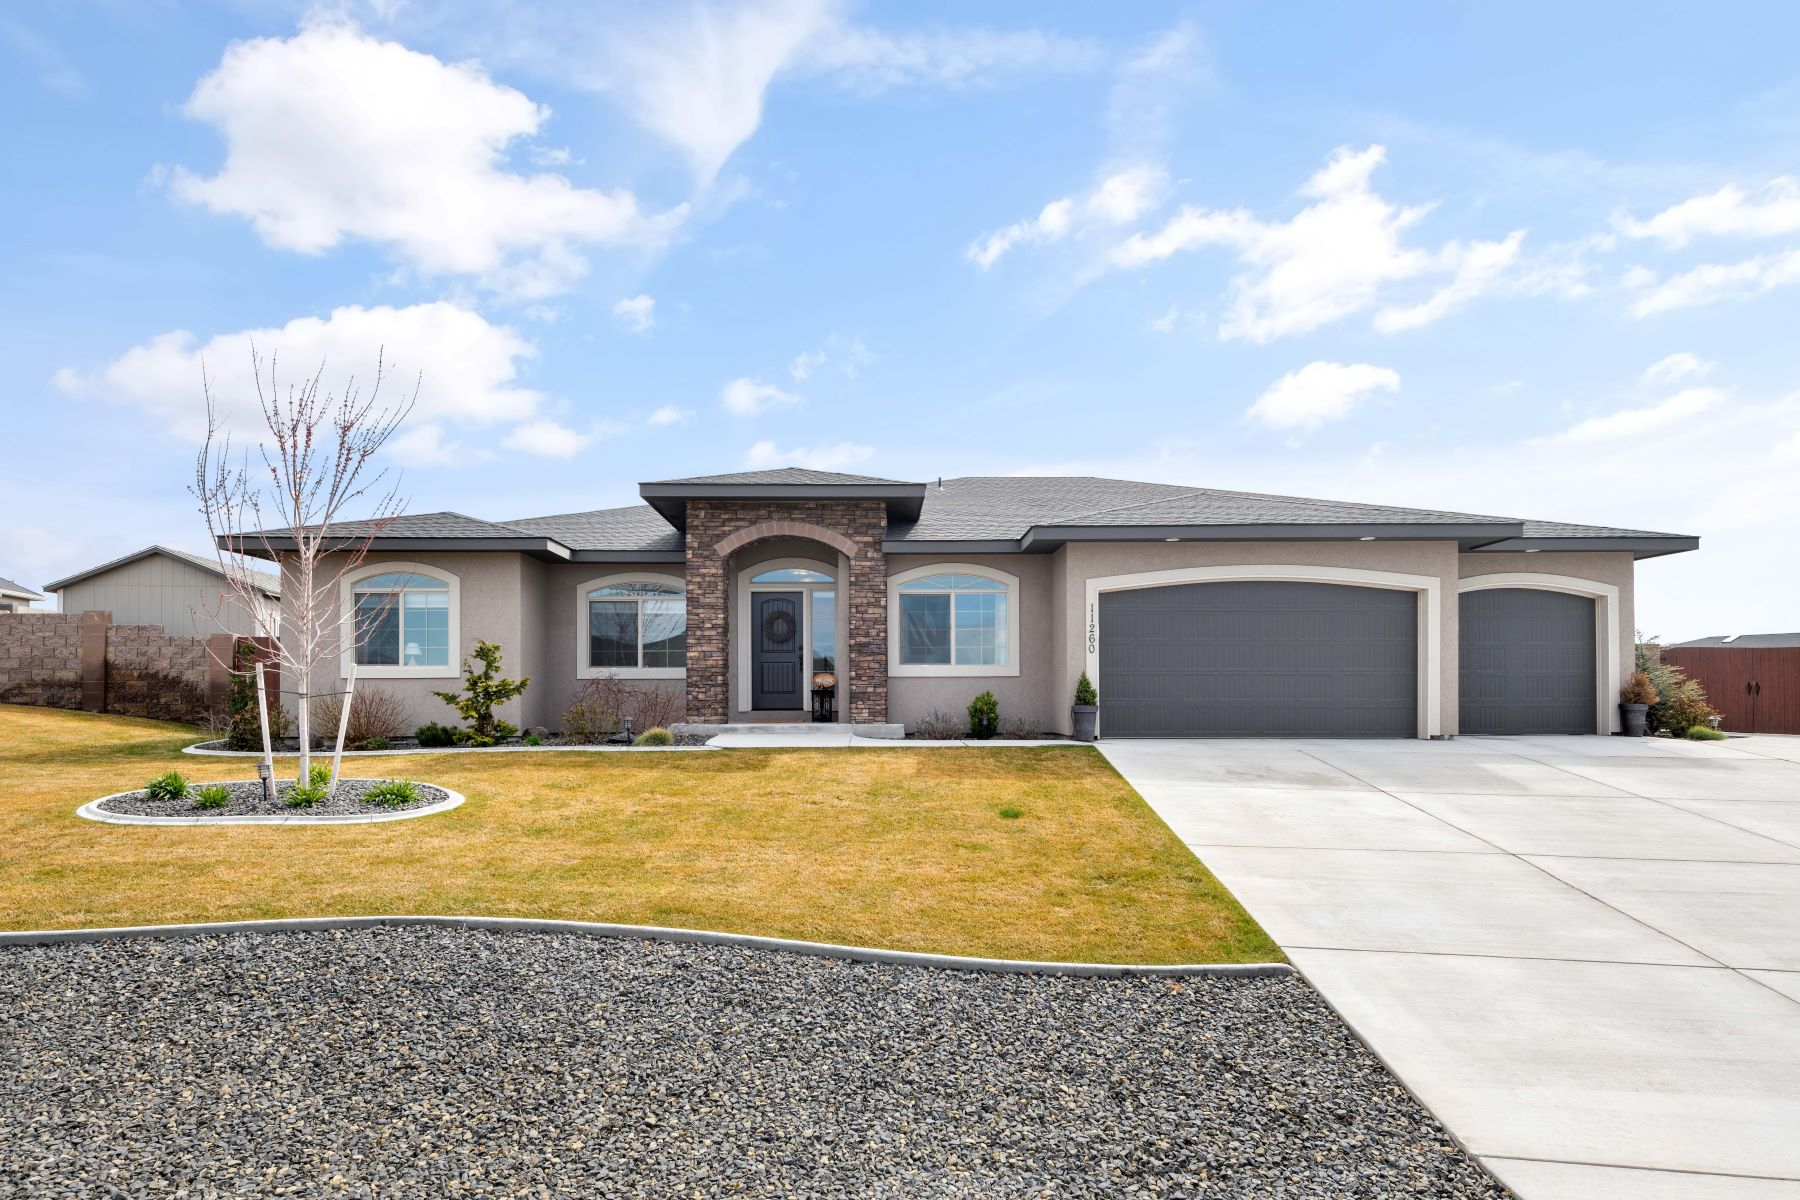 Single Family Homes for Sale at RV Parking! 11260 Woodsman Drive Pasco, Washington 99301 United States